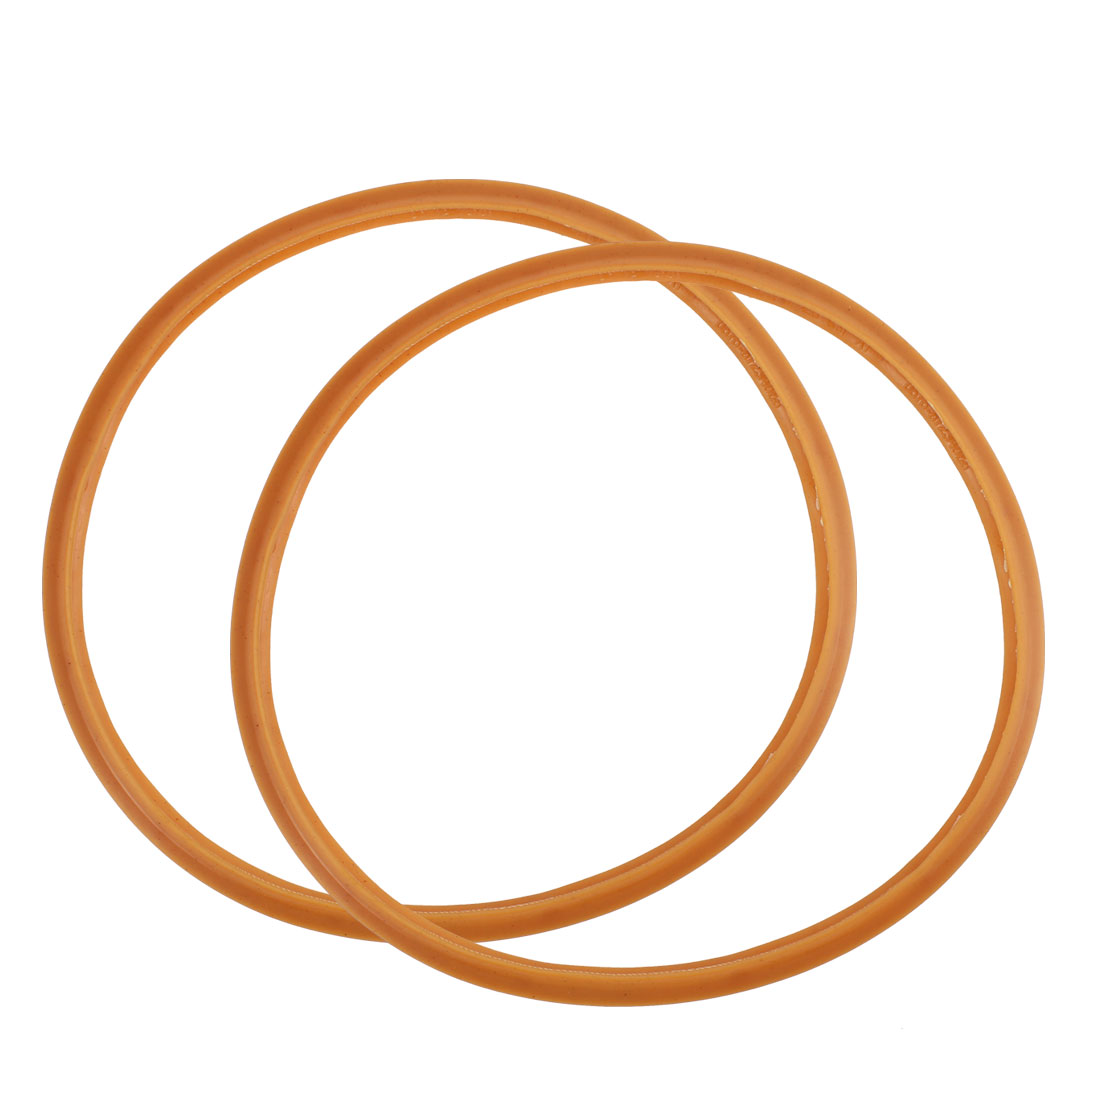 Home Pressure Cooker Rubber Gasket Sealing Ring Brown 18cm Inner Dia 2pcs